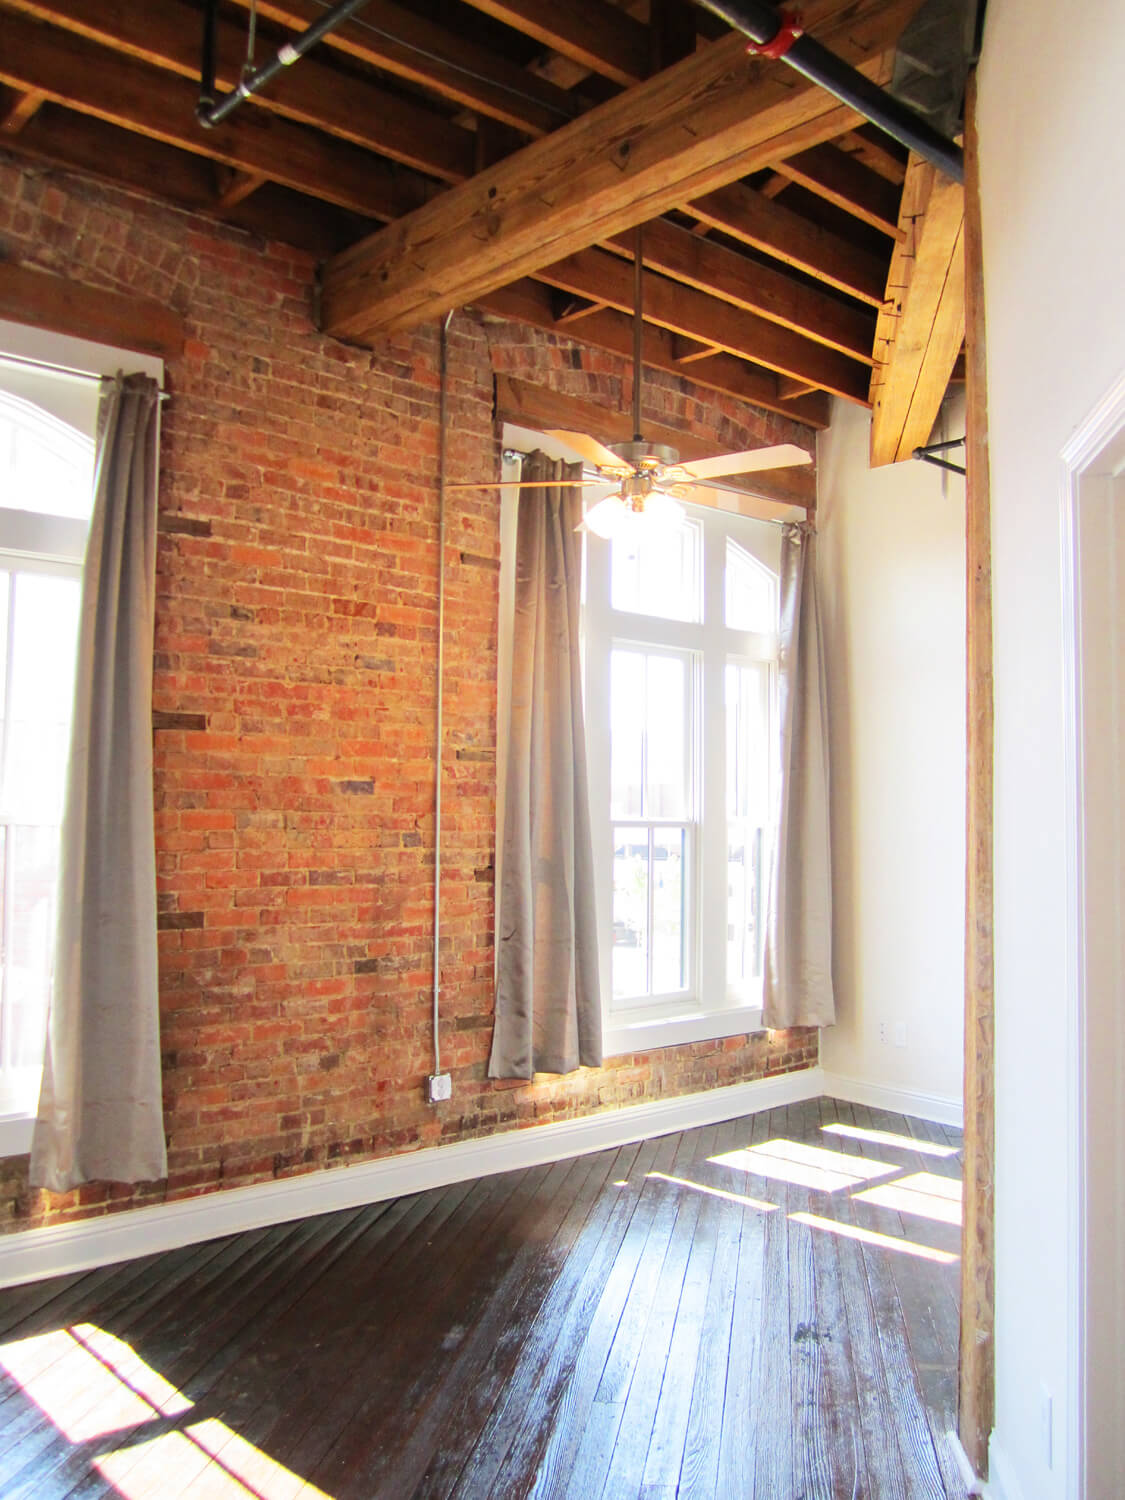 Printing Press Lofts Designed by Foshee Architecture - Apartment Bedroom with Exposed Wood Ceiling